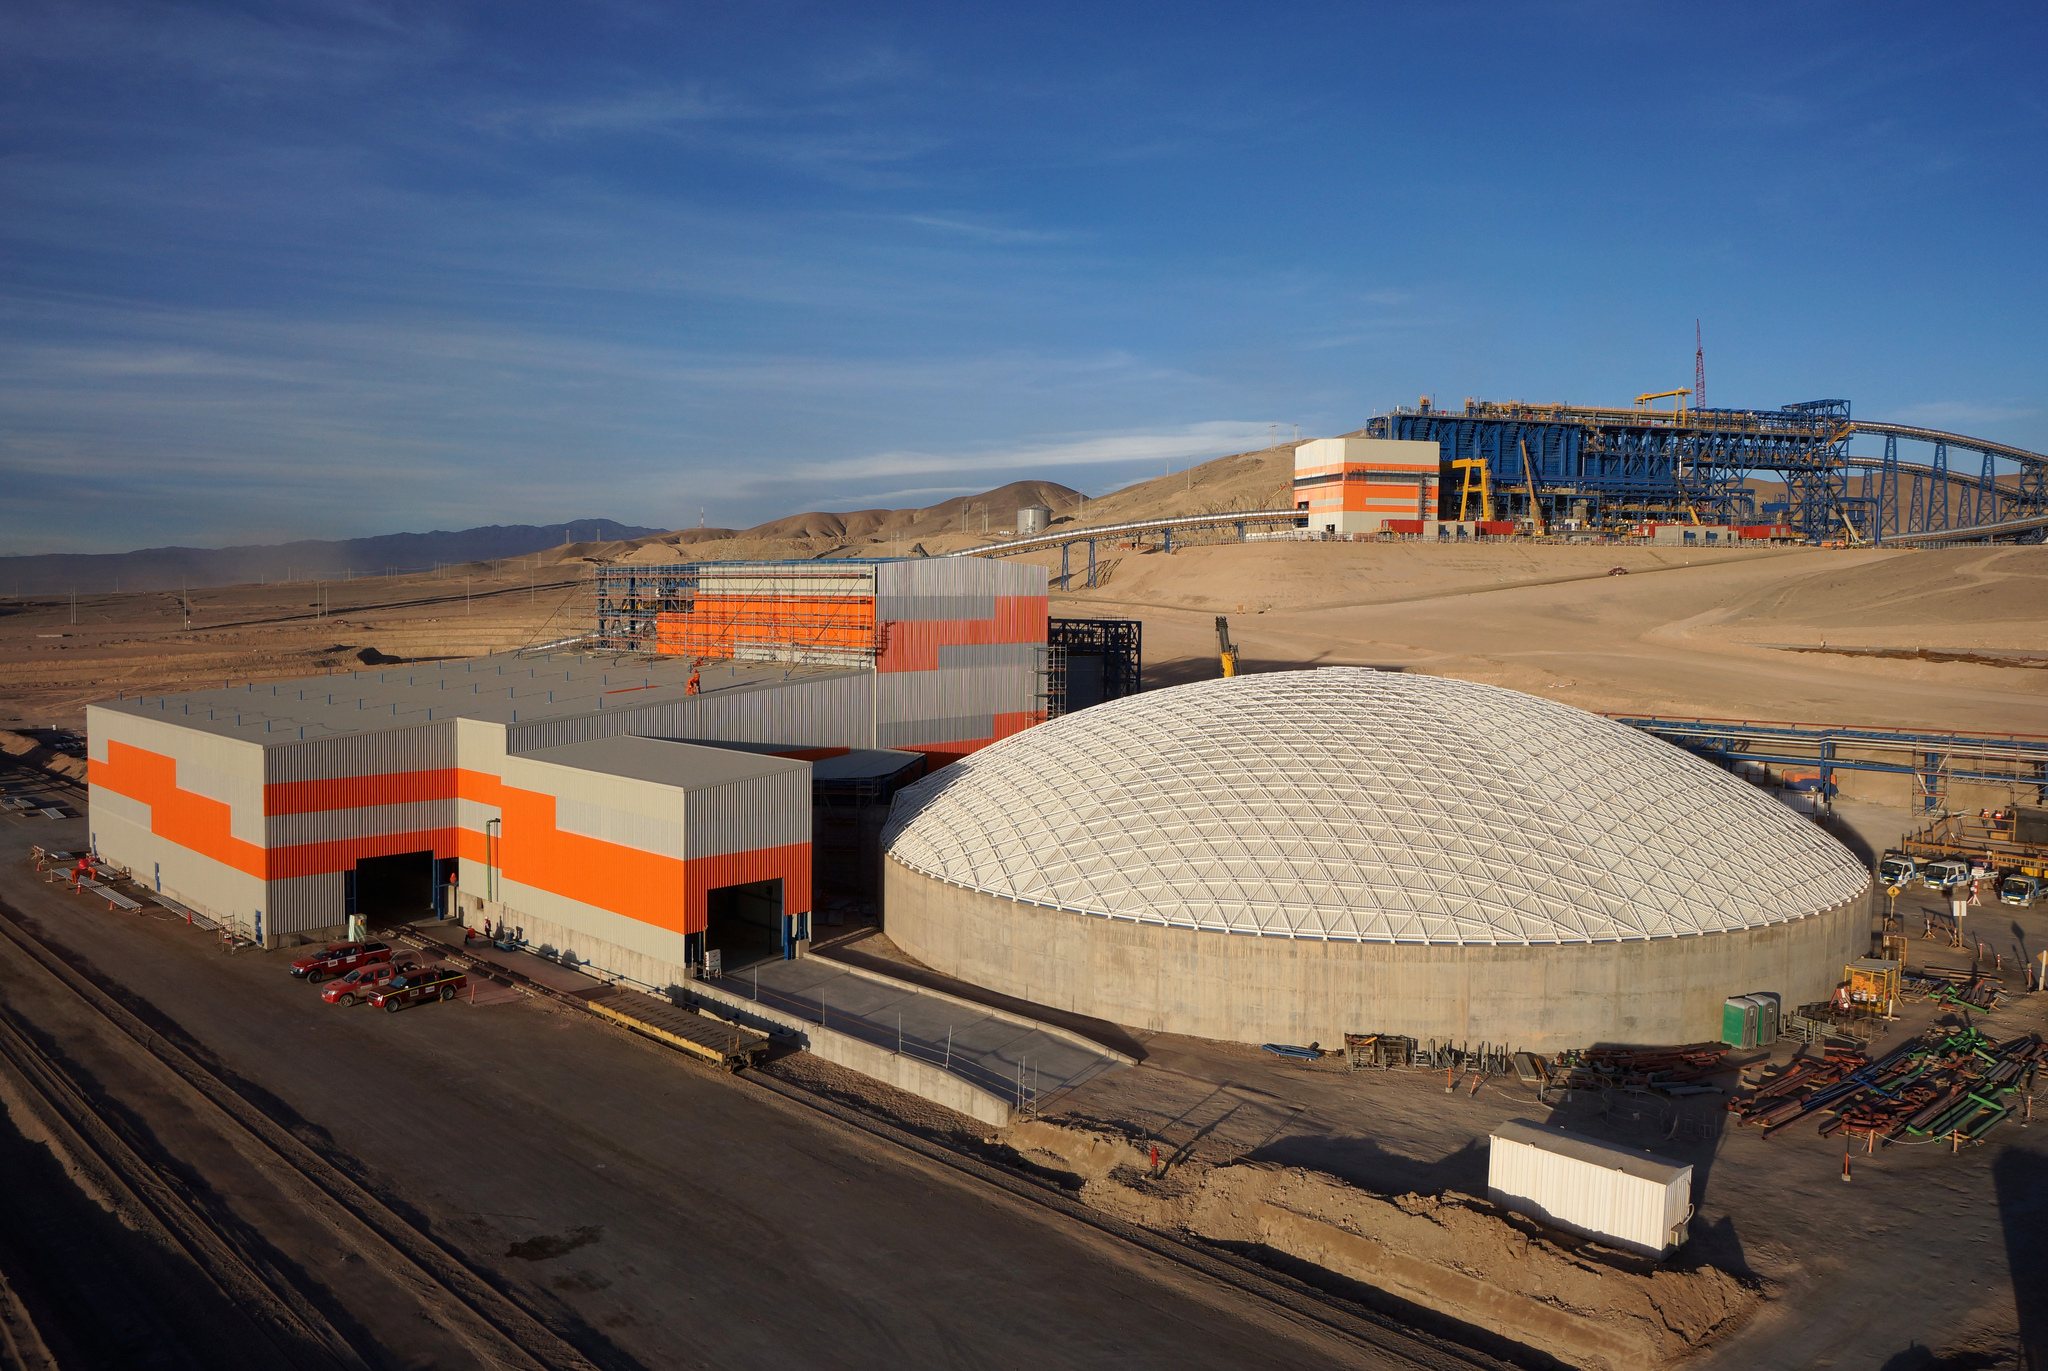 Foreground: a 62m concentrate storage dome. Background: a 122m copper ore storage dome